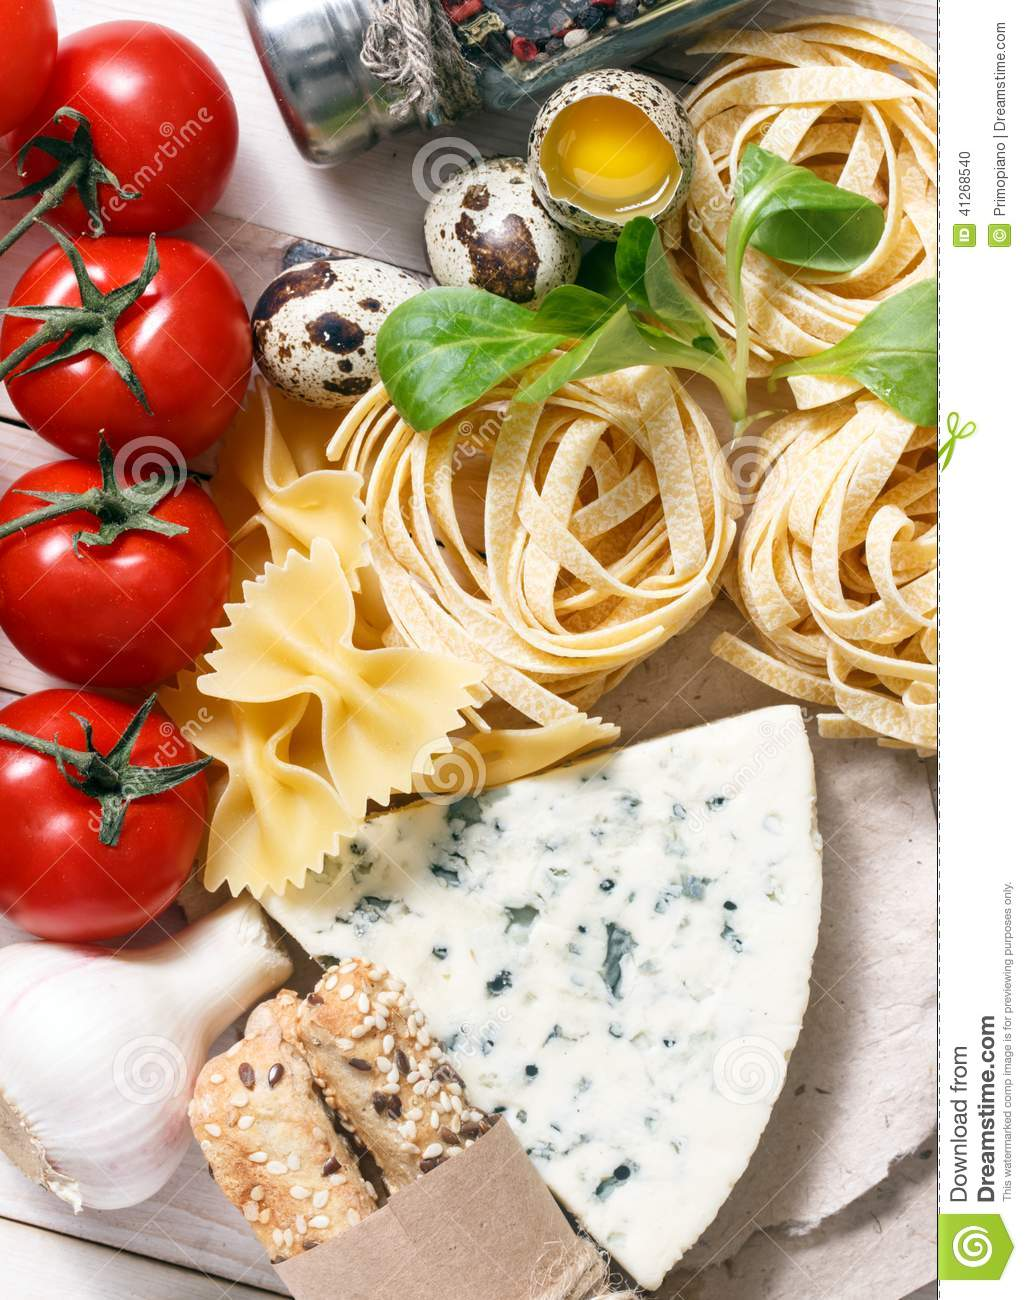 Italian food recipe on rustic wood stock photo image of grissini download italian food recipe on rustic wood stock photo image of grissini italian forumfinder Images